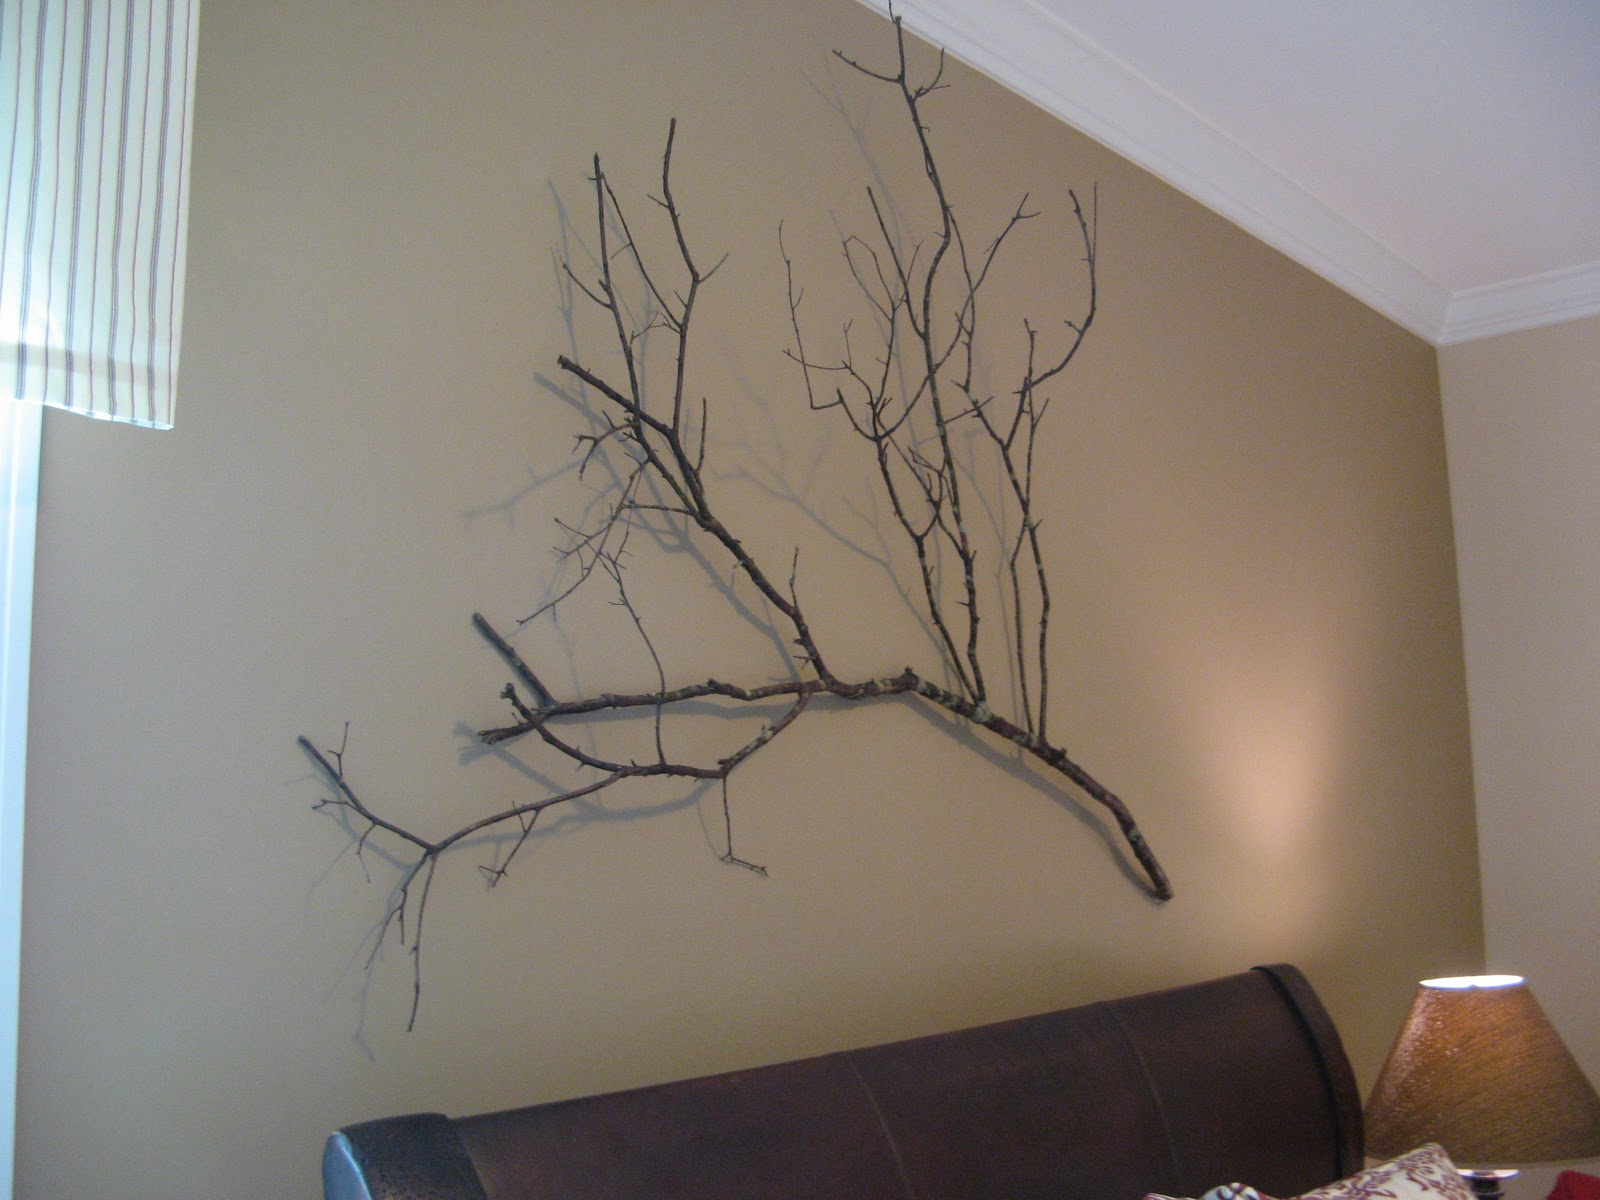 Tree Branch Wall Art - tree branch with birds and ...